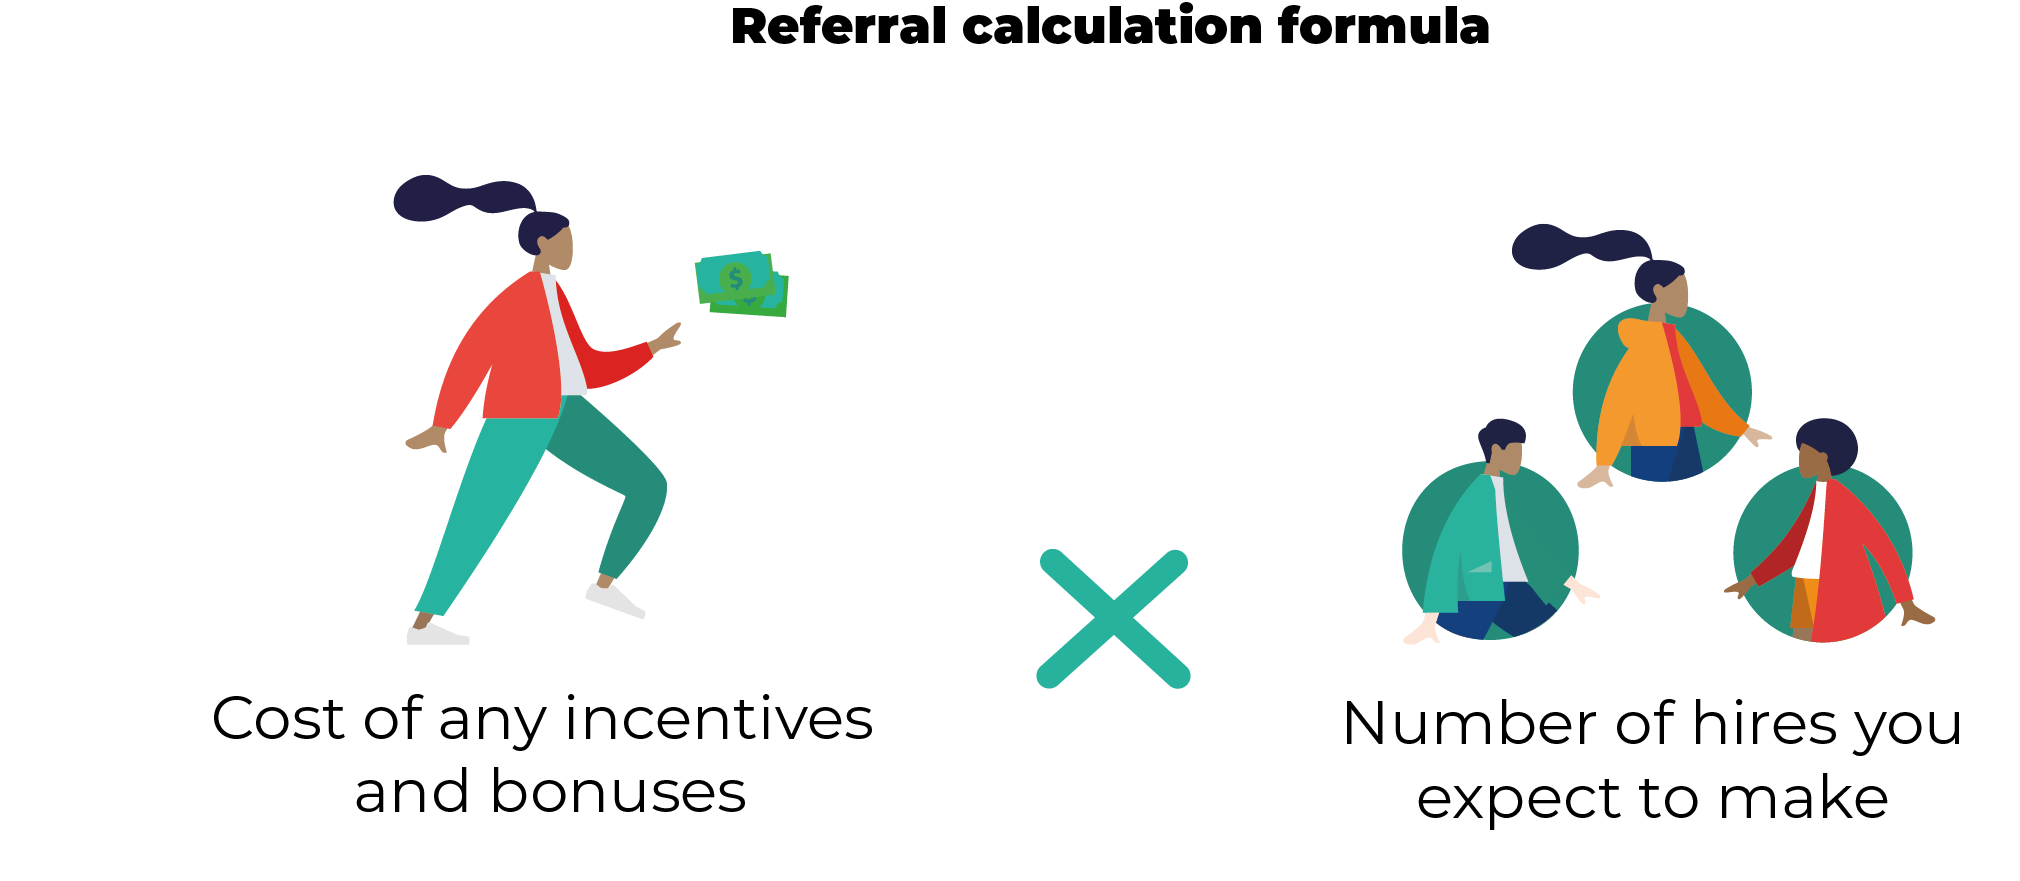 Occupop blog - Referral calculation formula